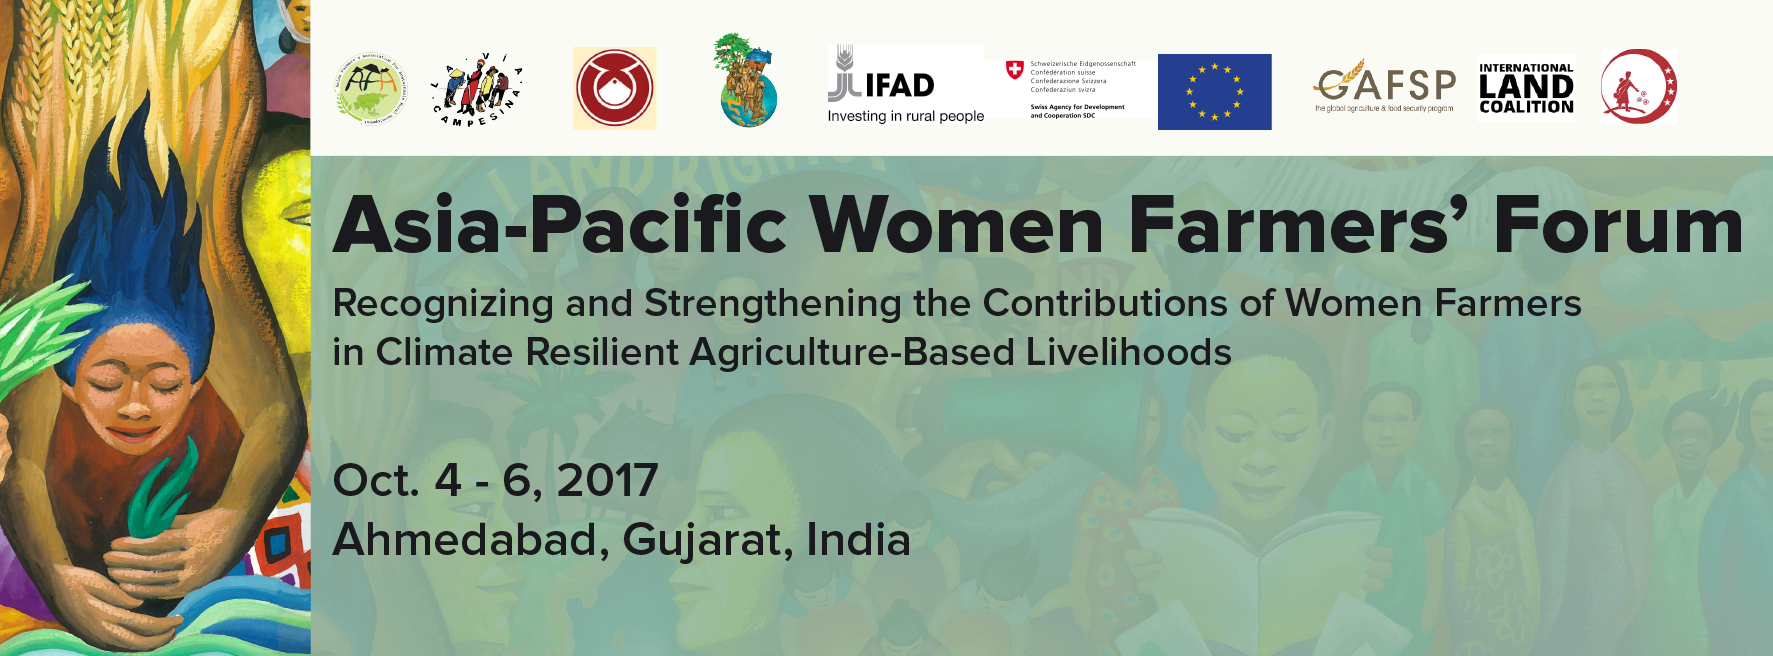 Asia-Pacific Women Farmers' Forum